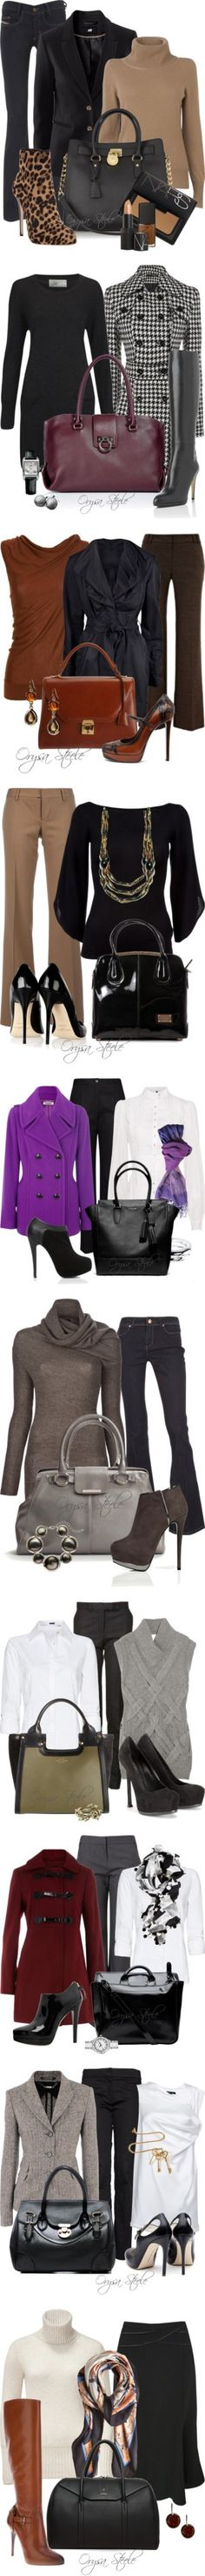 """Dressed Up for Fall"" by orysa on Polyvore  If I only had some place to go to that required me getting dressed up... -M"